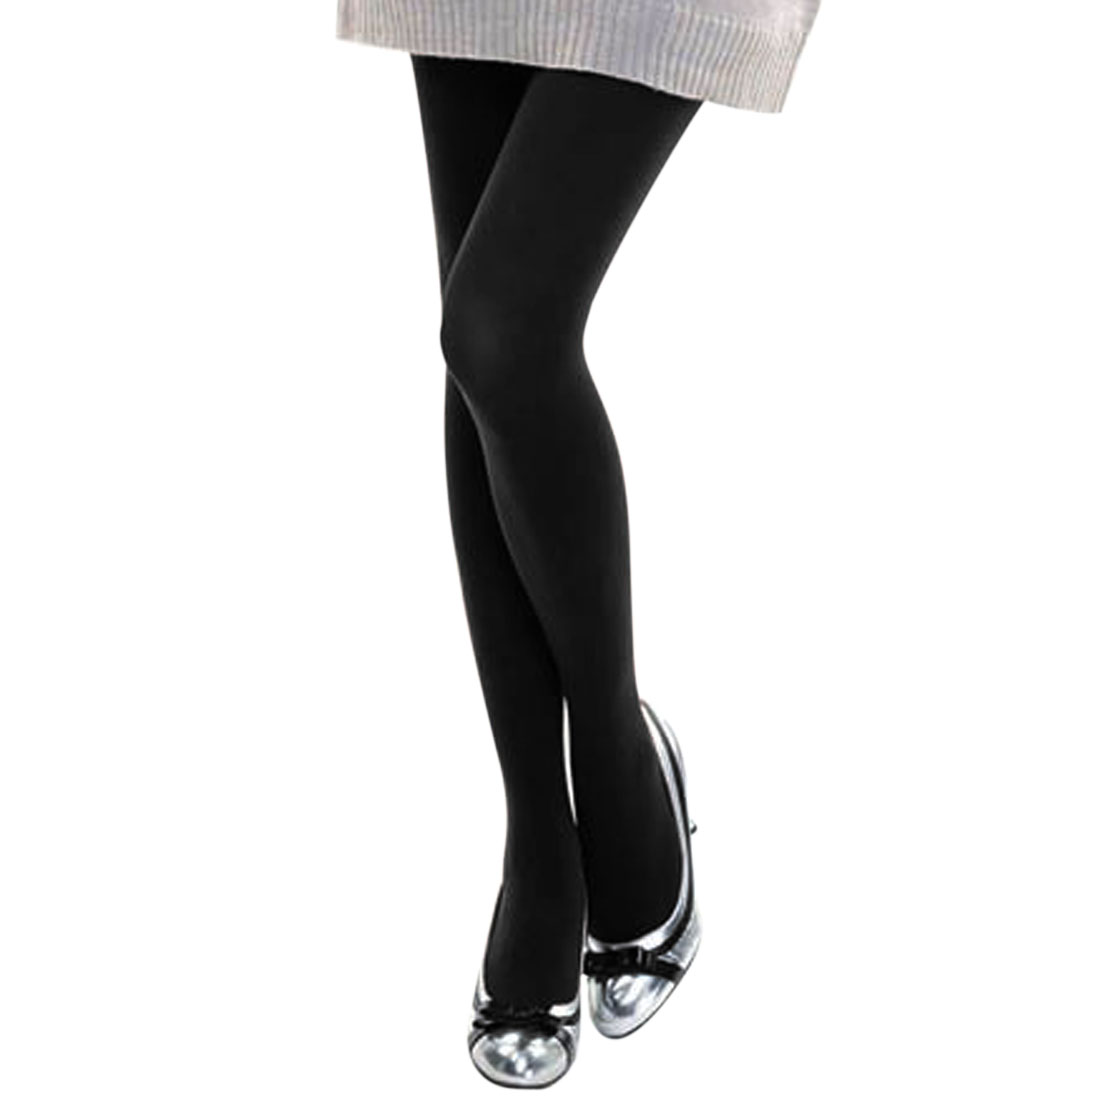 Ladies Black Elastic Waist Closefitting Footed Pantyhose Tights XS